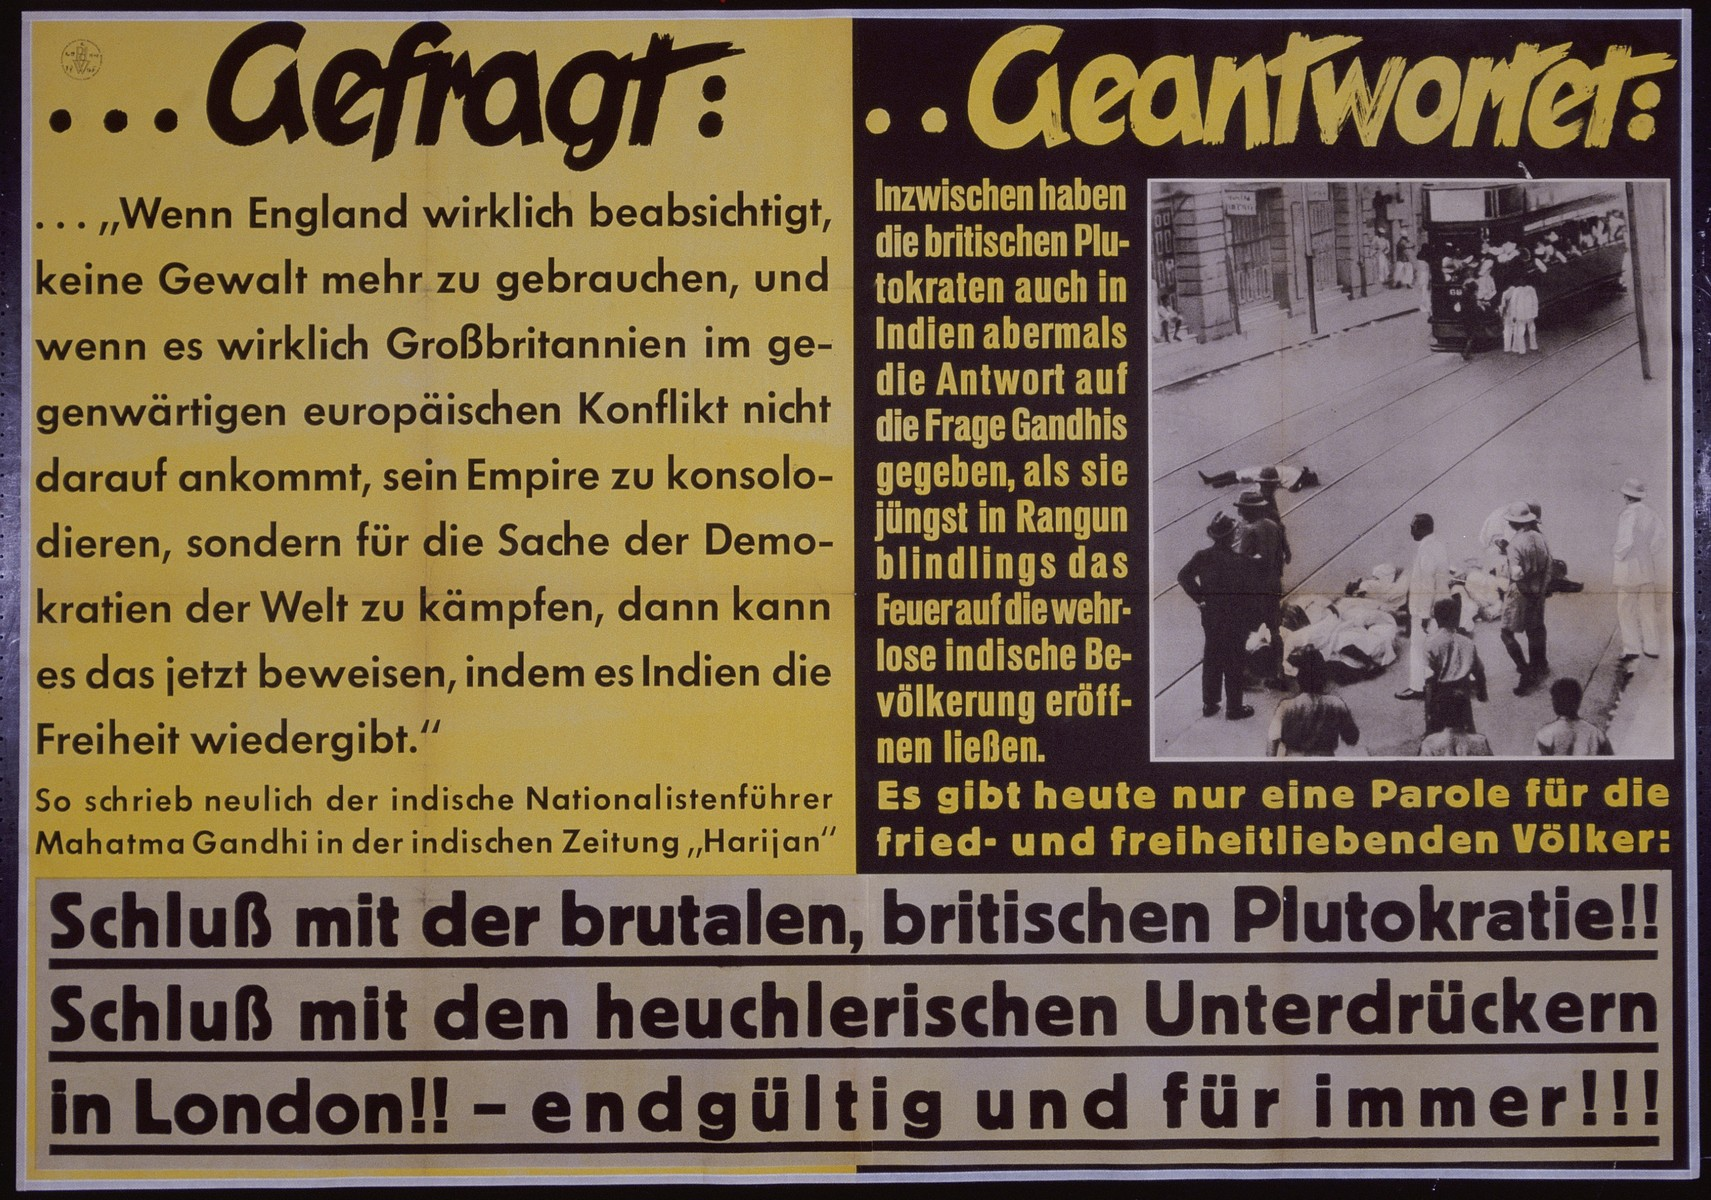 """Nazi propaganda poster entitled, """"...Gefragt...Geantwortet,"""" issued by the """"Parole der Woche,"""" a wall newspaper (Wandzeitung) published by the National Socialist Party propaganda office in Munich."""